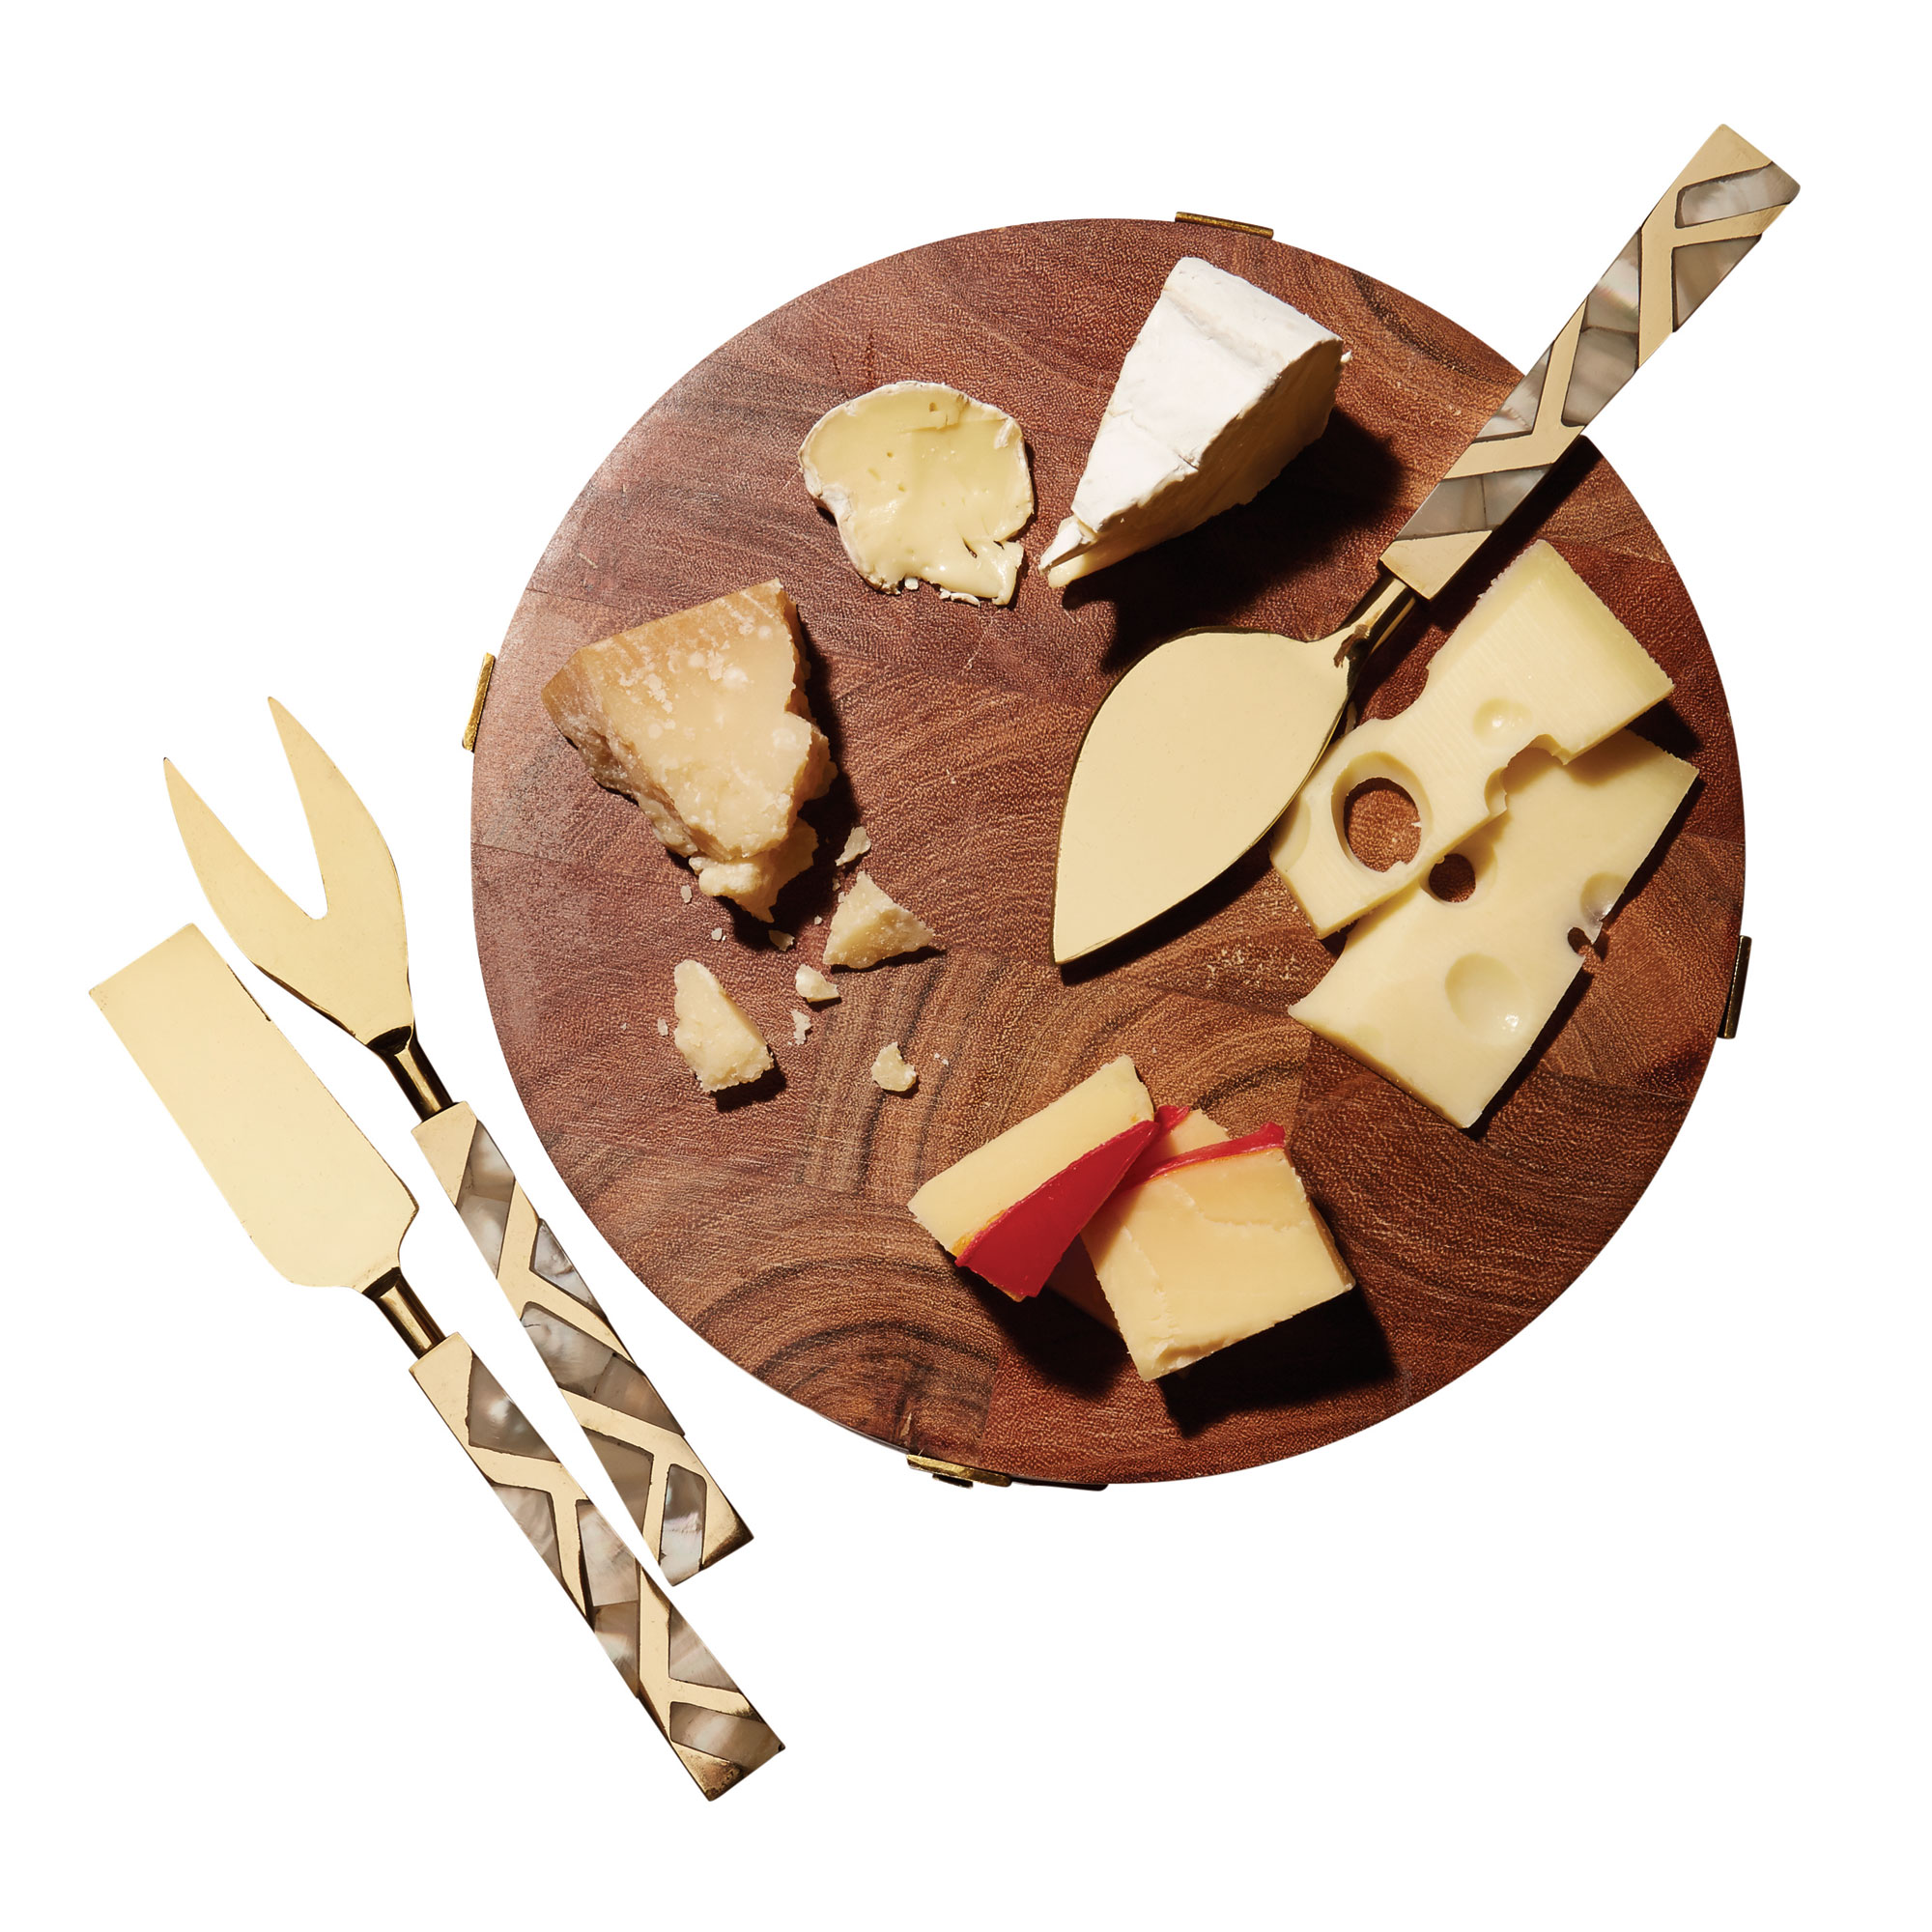 Nate Berkus Cheese Board and Knife Set